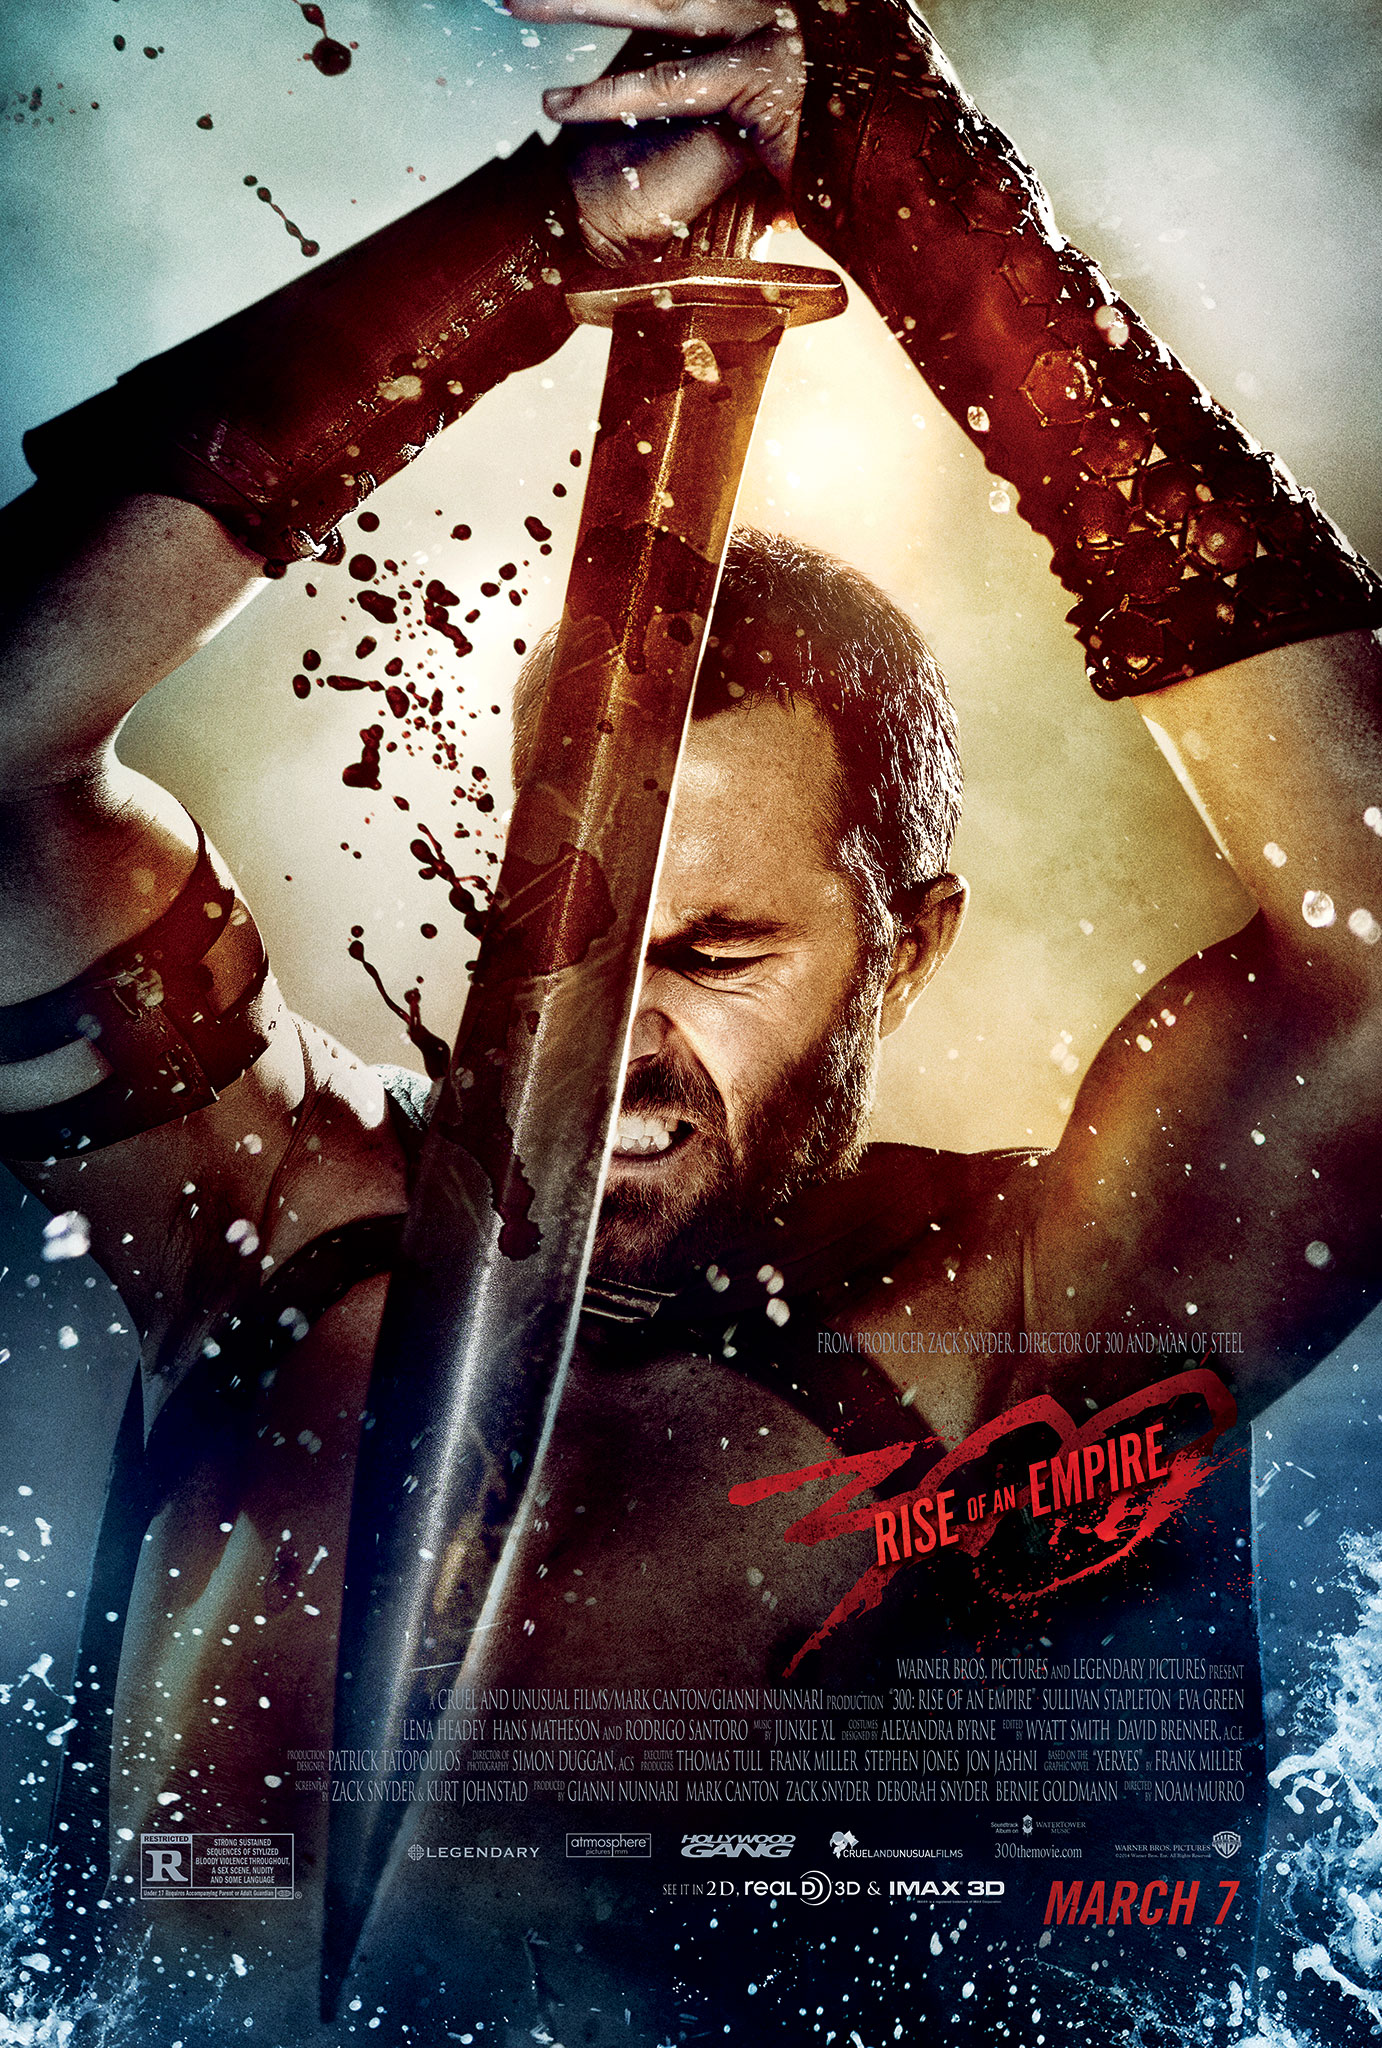 300: rise of an empire - hd-trailers (hdtn)